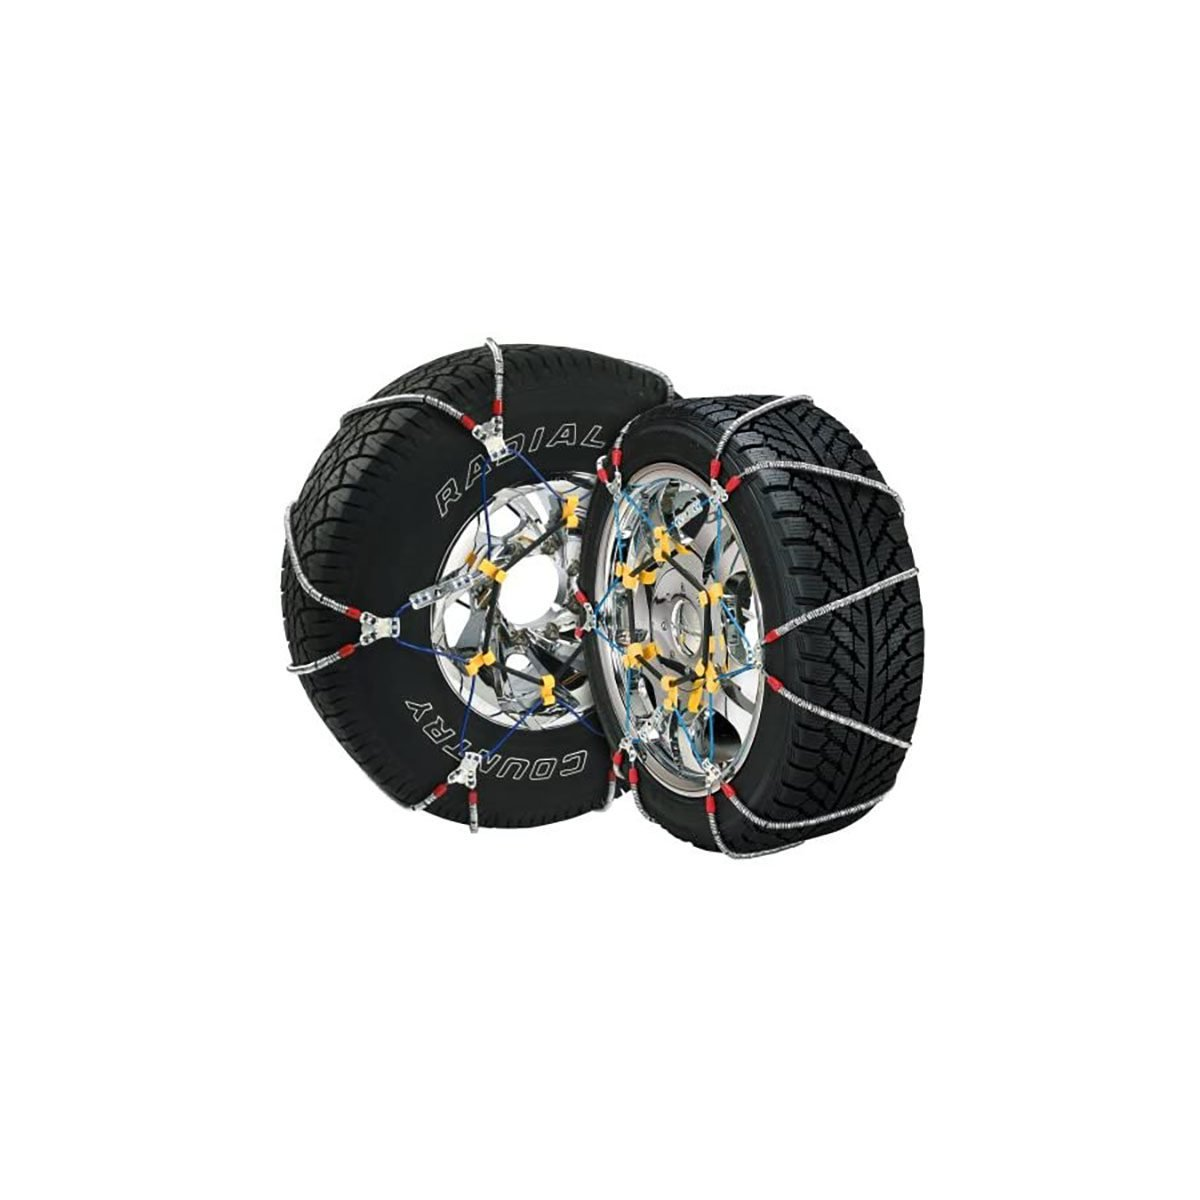 Snow chains for tires